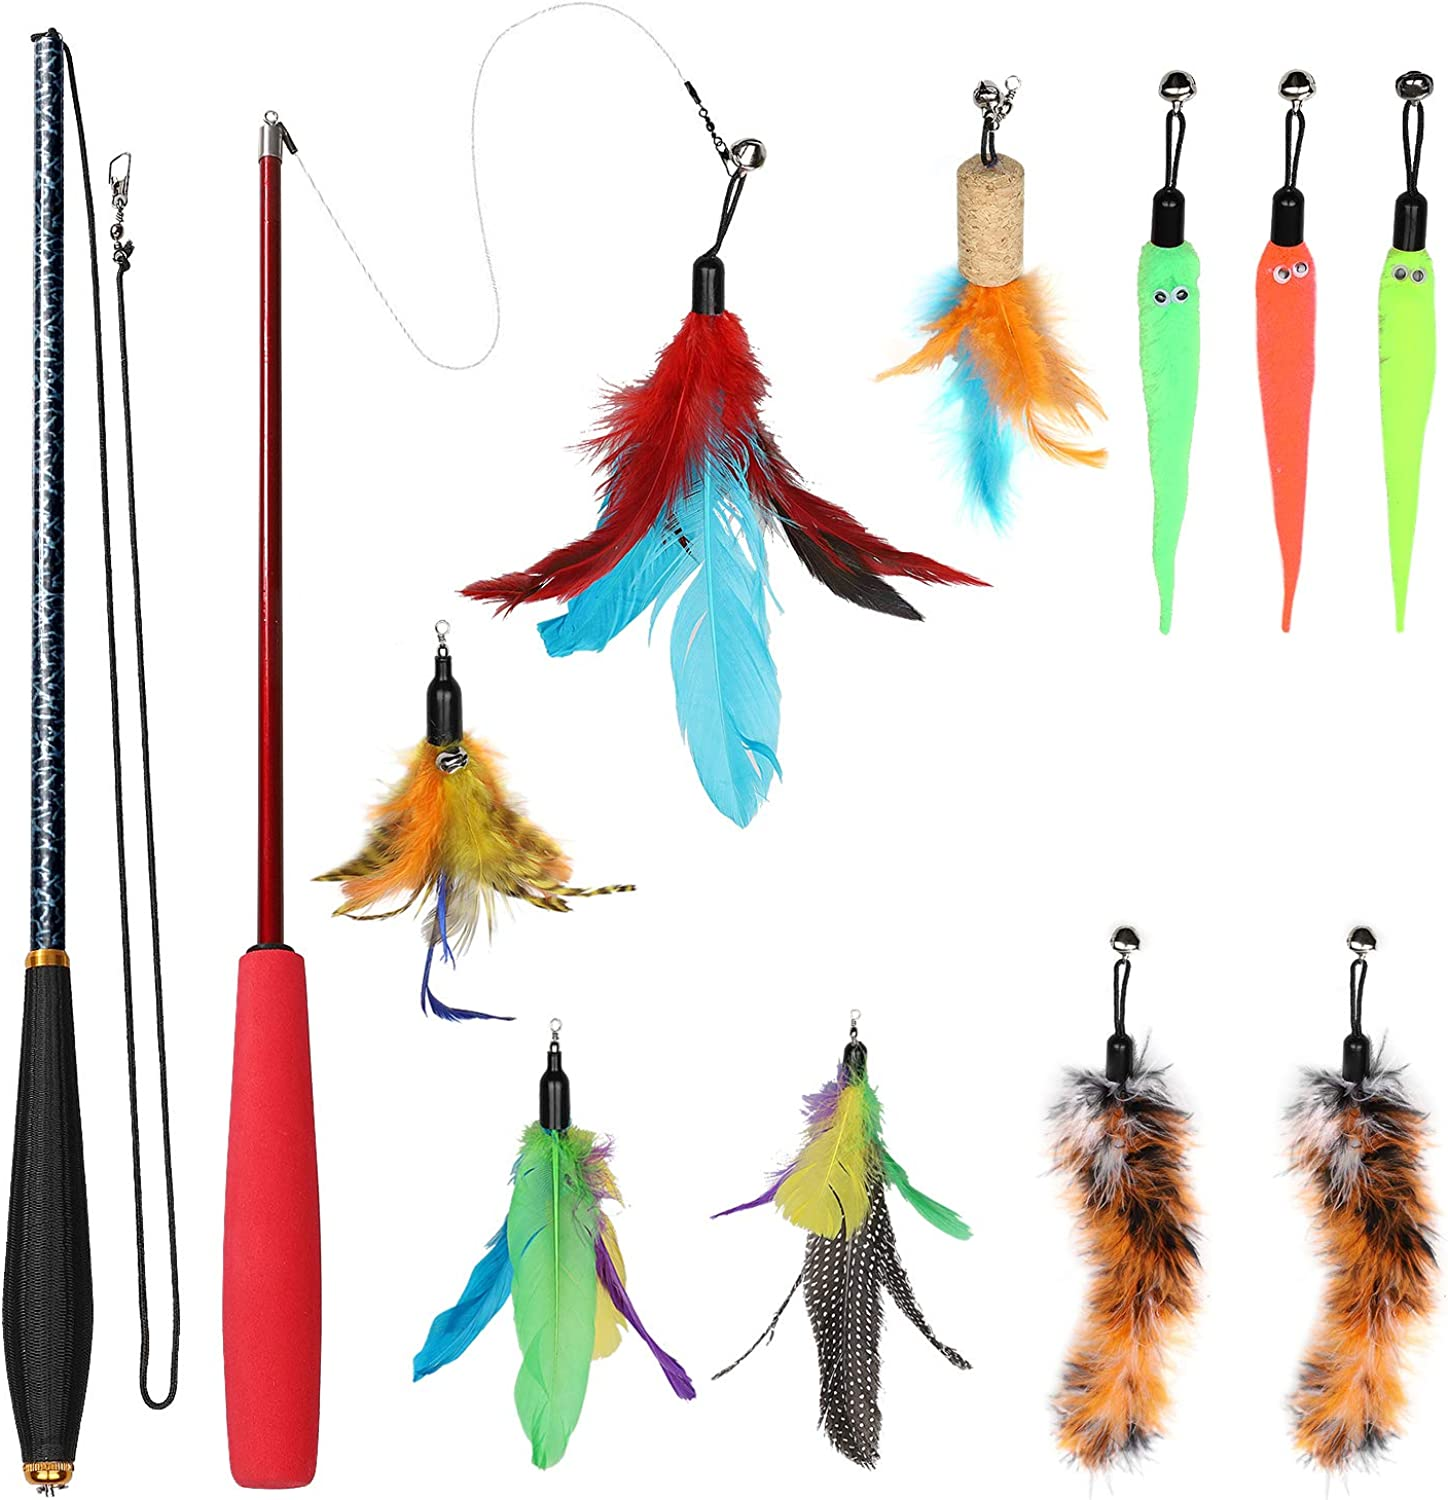 Ecokeo Cat Toy Set, 12 pcs Retractable Interactive Cat Feather Toy, Including 2 Cat Toy Wand 10 Refills Feather(5 Feather Toy 5 Worms Teaser Exerciser)